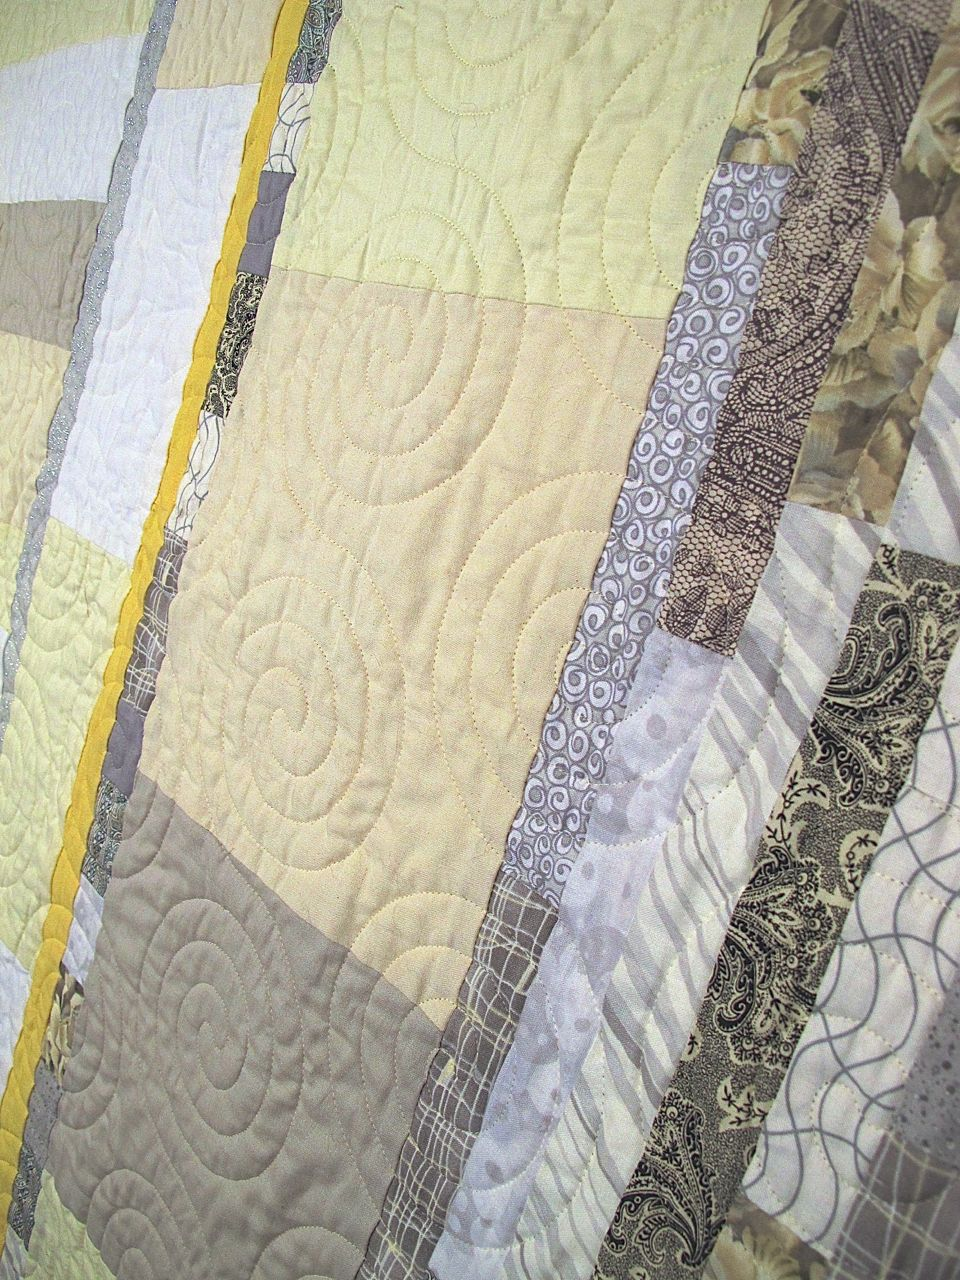 detail of Medeiros Wedding Quilt by Carol Van Zandt